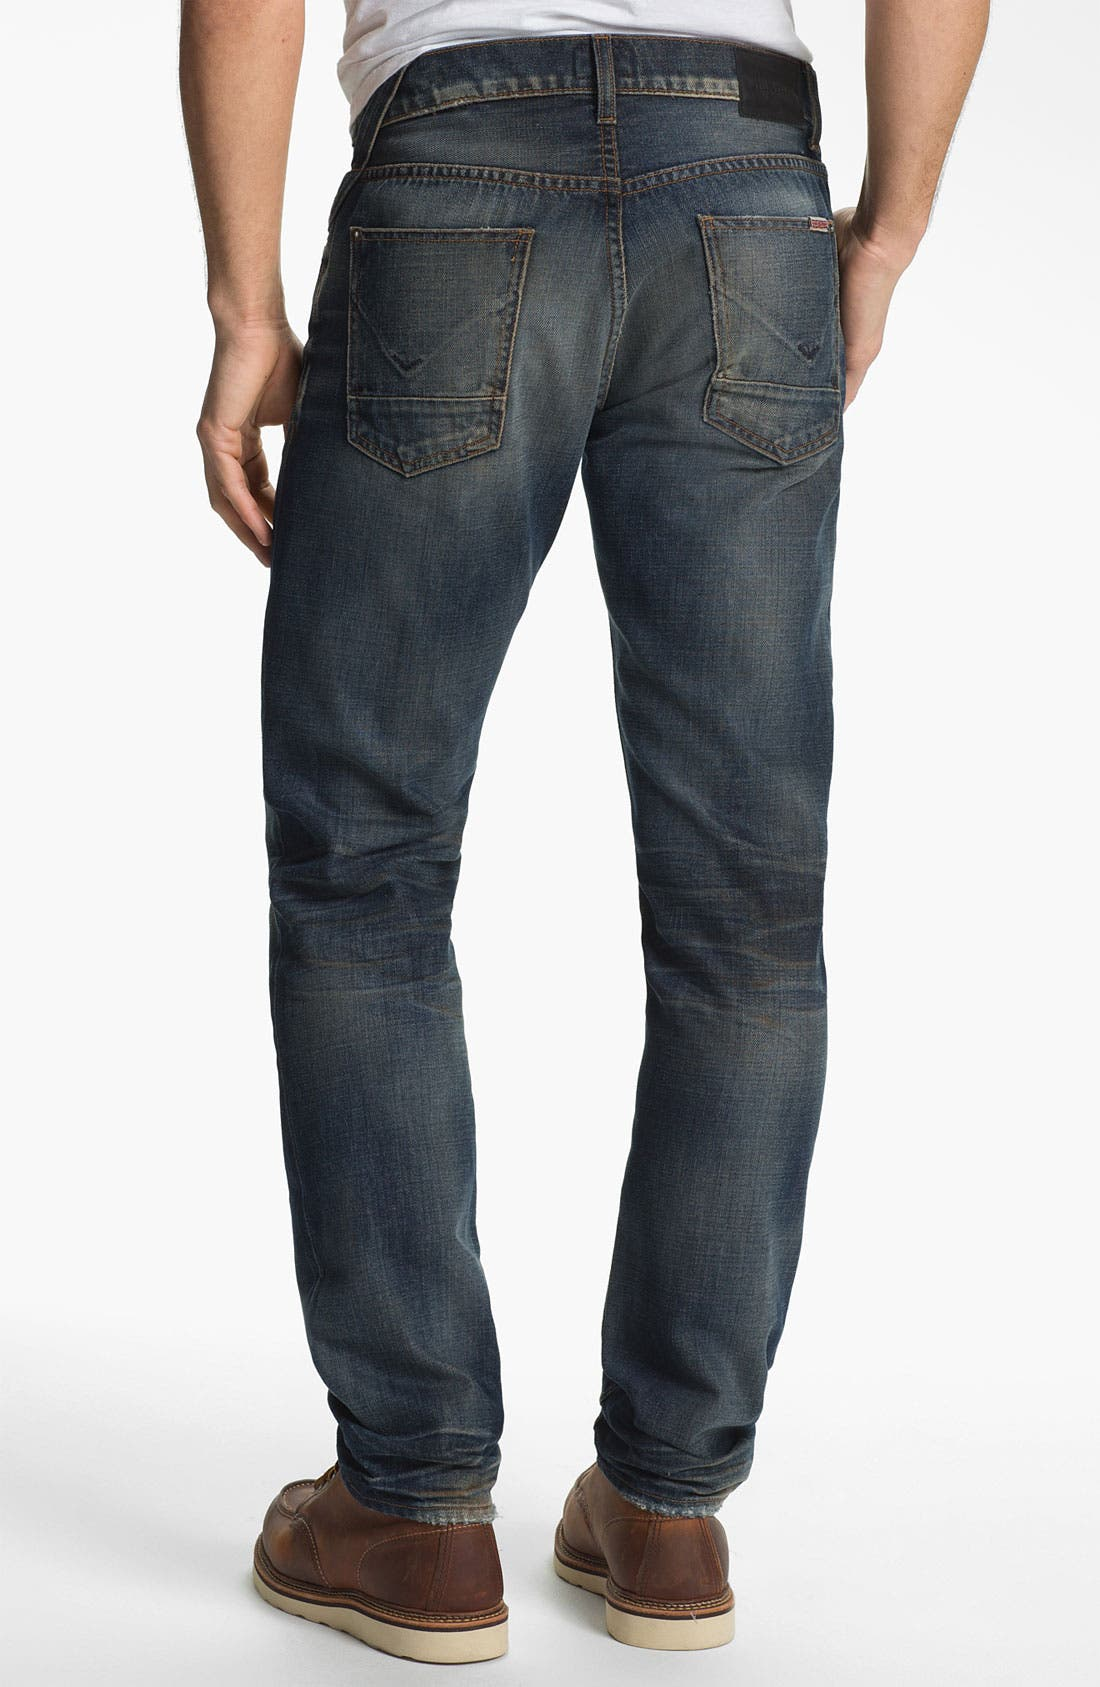 Alternate Image 1 Selected - Hudson Jeans 'Sartor' Skinny Fit Jeans (Dhara)